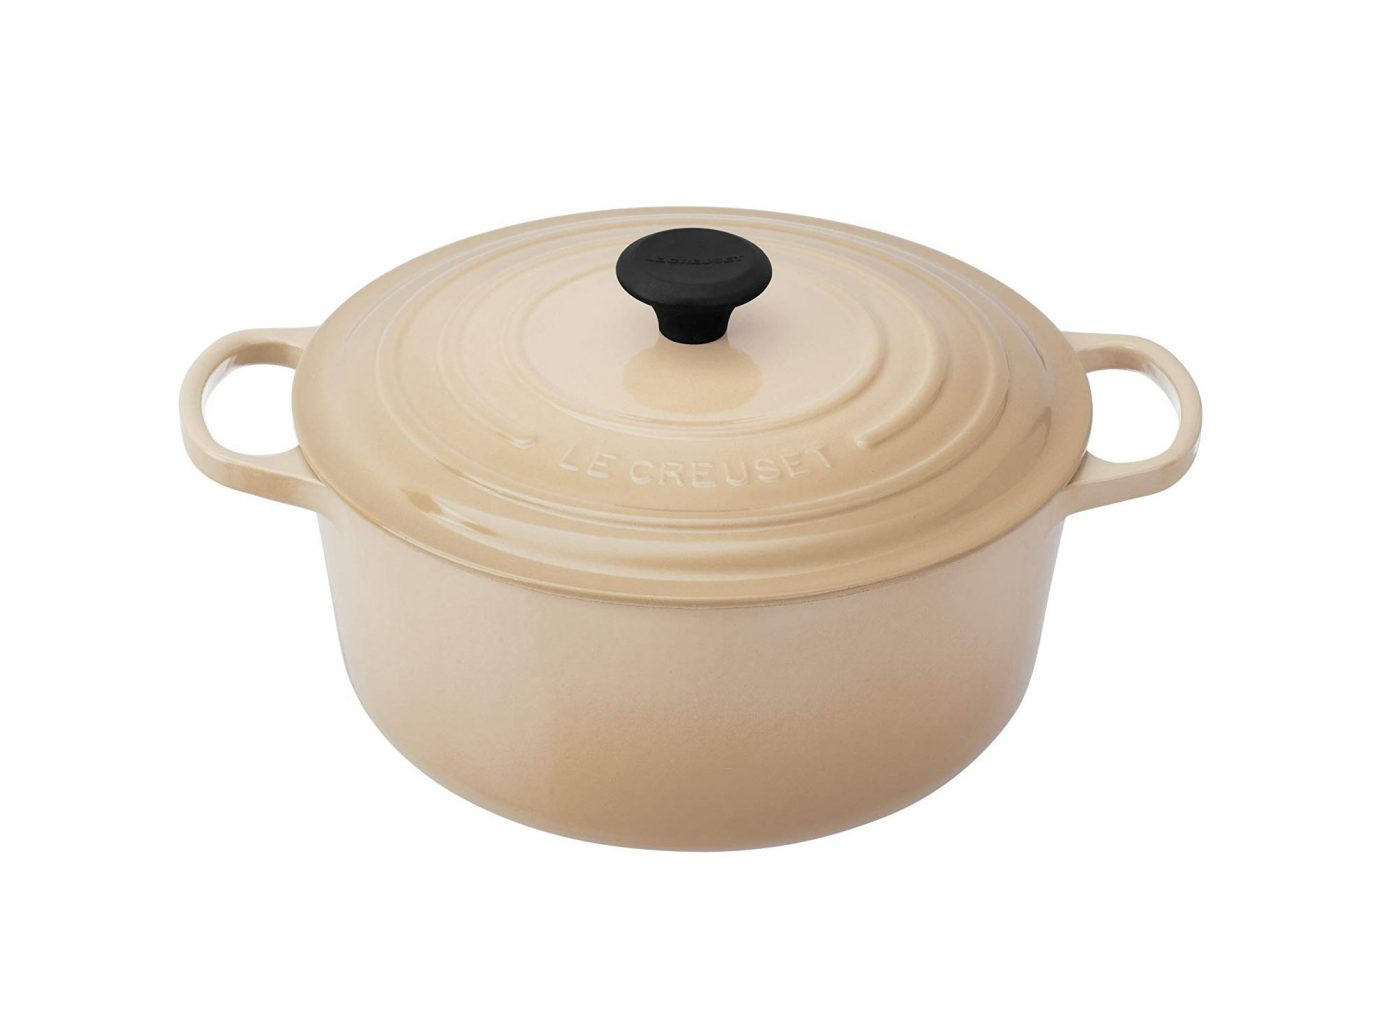 Le Creuset Signature Enameled Cast-Iron French Oven